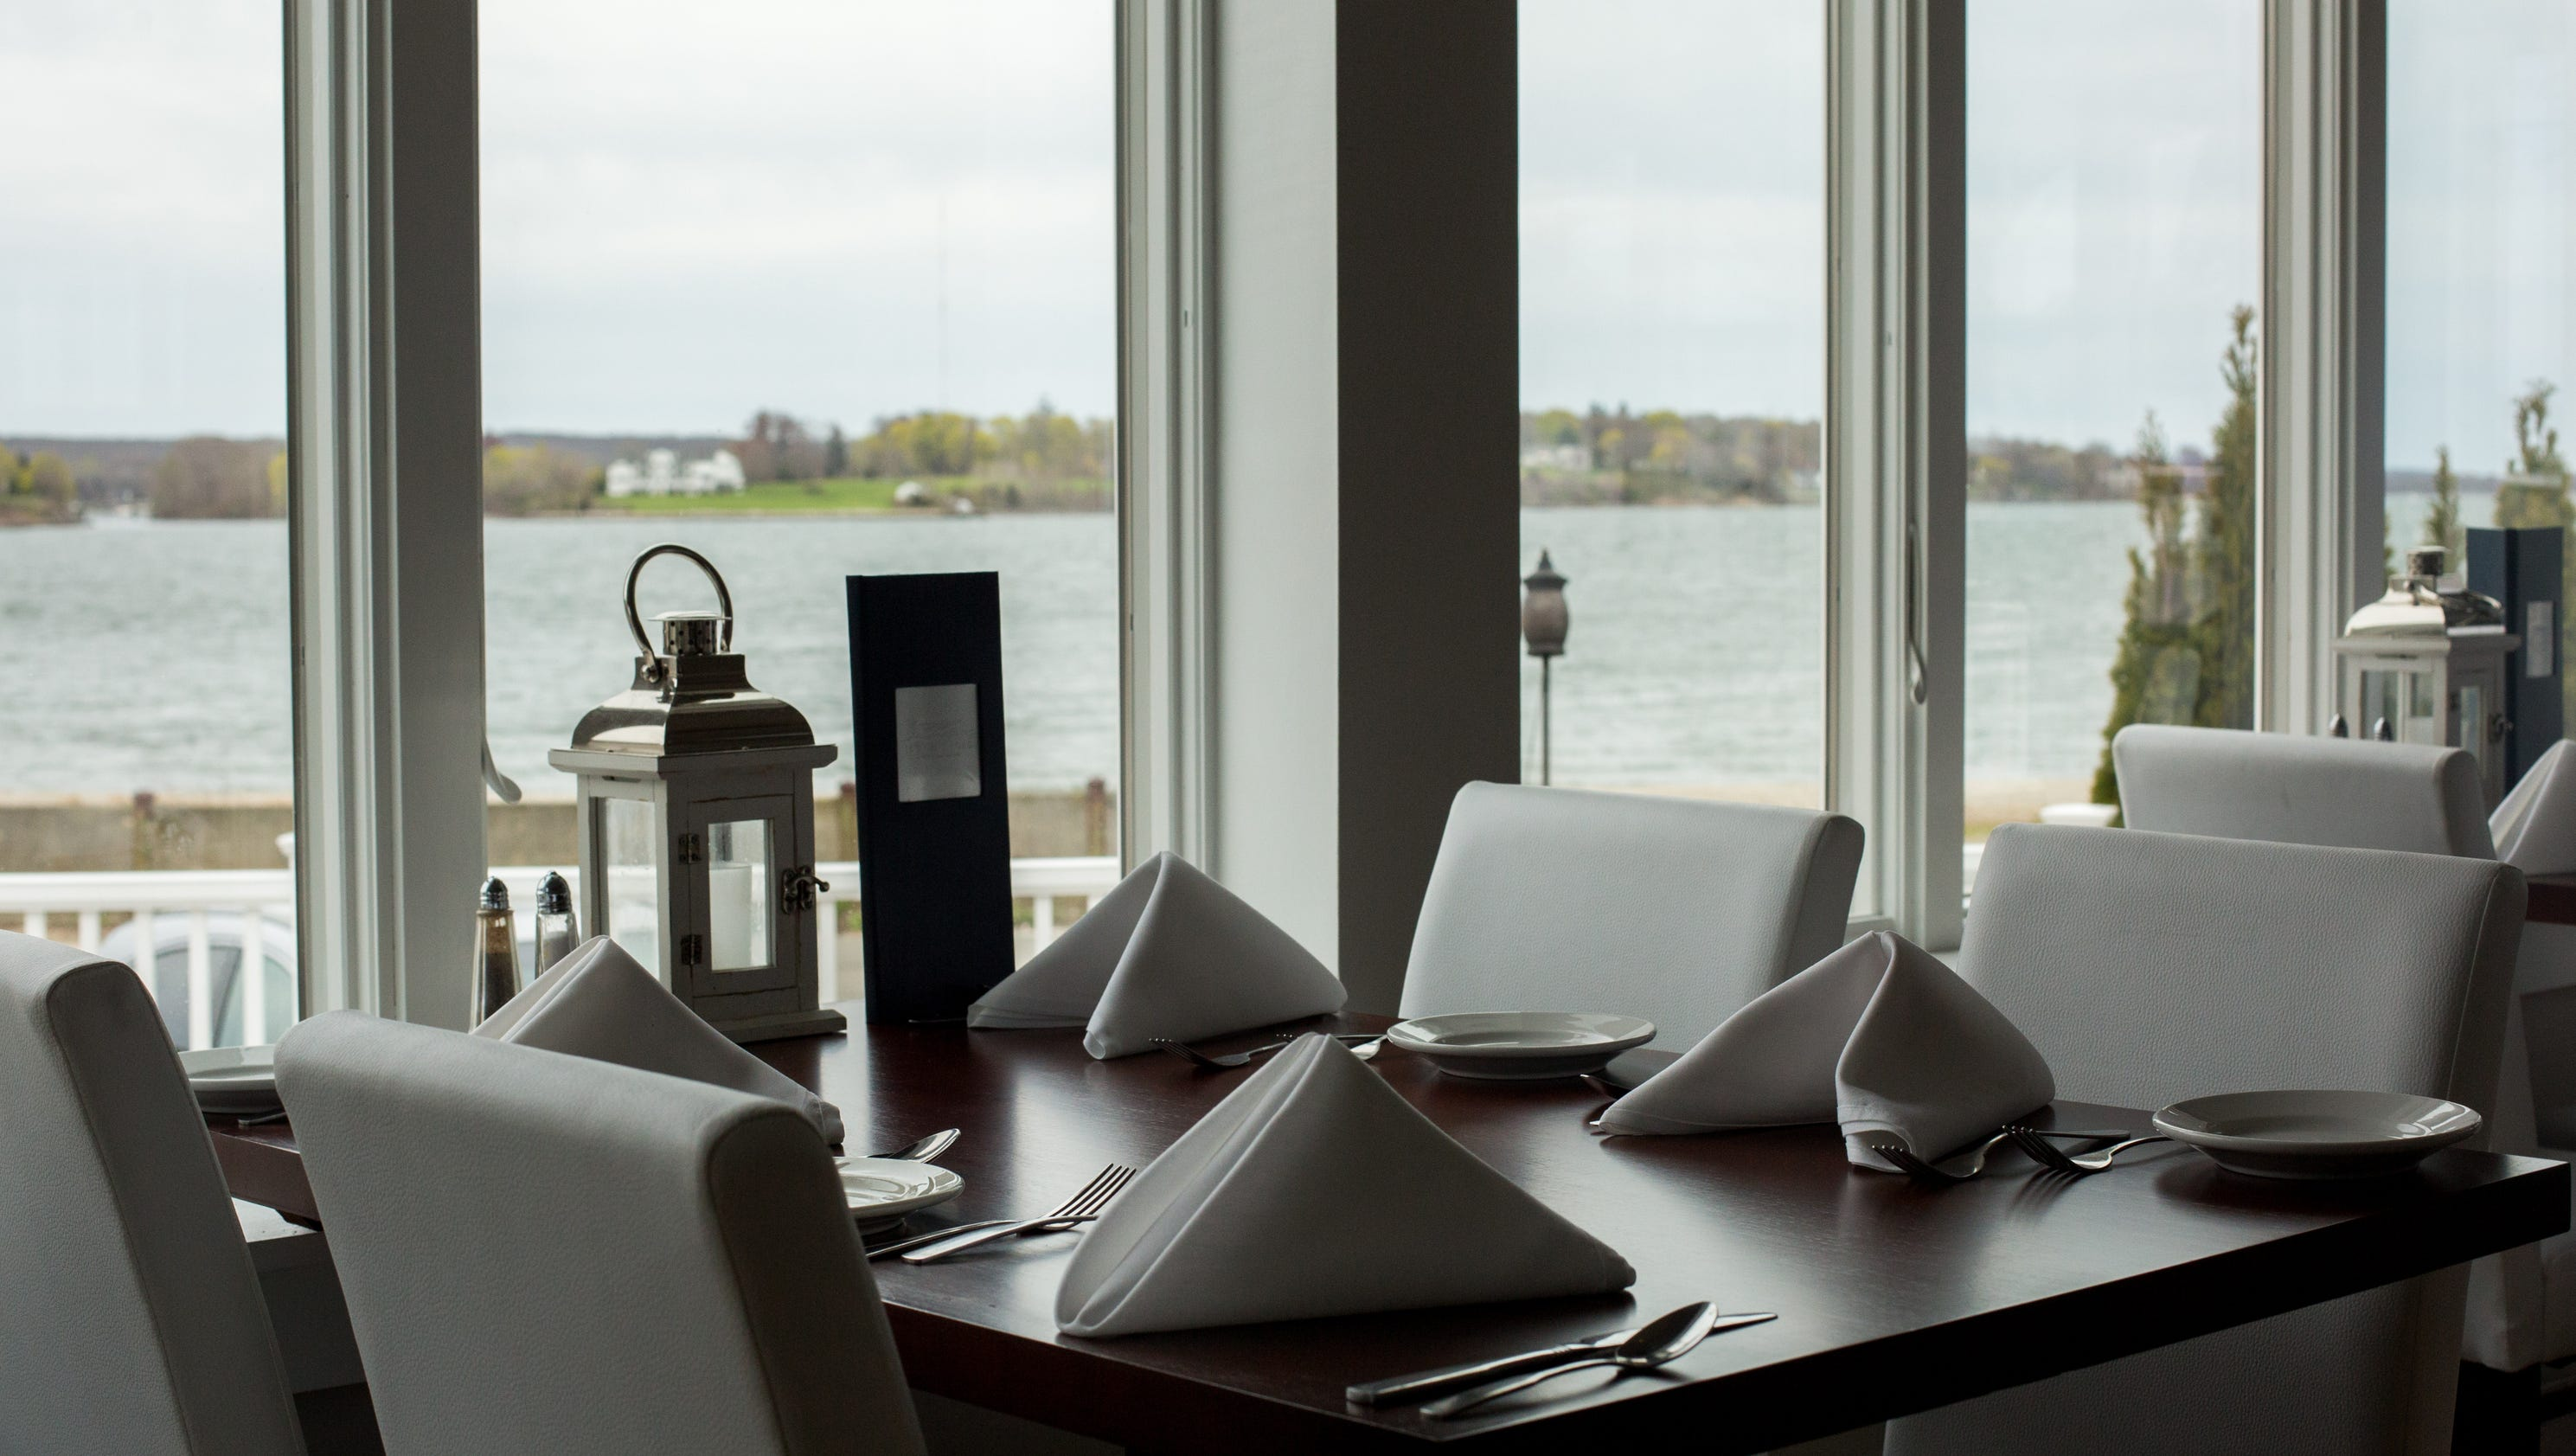 Opentable rates 100 most scenic restaurants in america for 0pen table